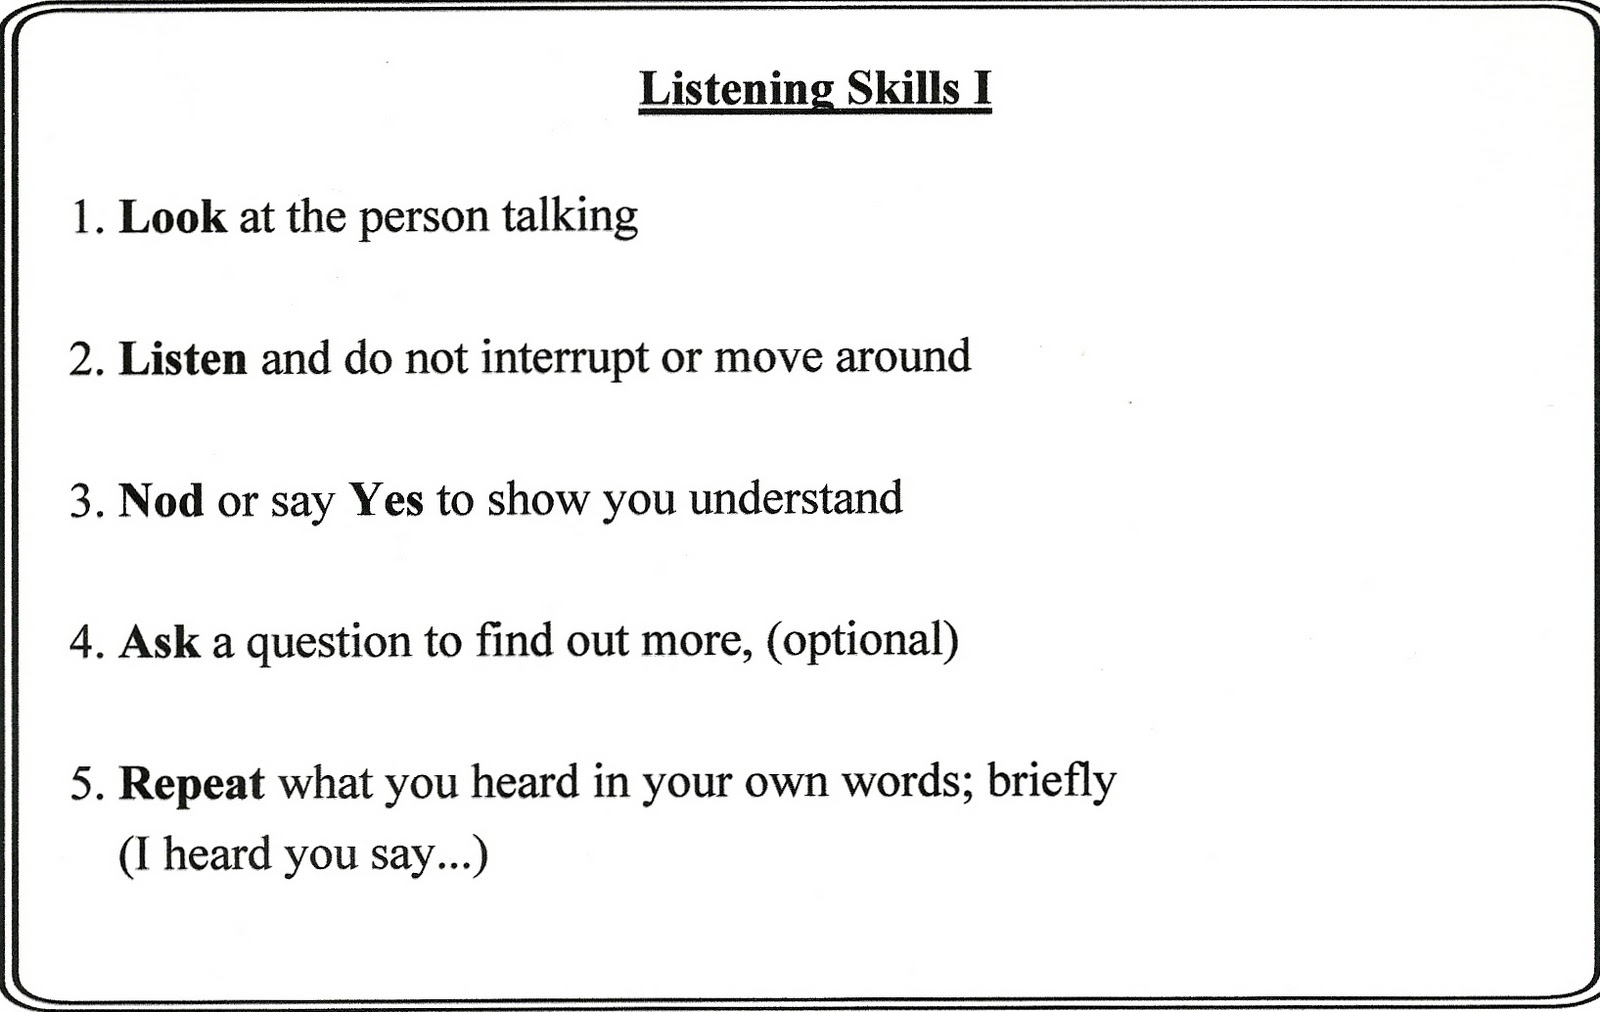 Printables Listening Skills Worksheets worksheet listening skills worksheets kerriwaller printables gallery